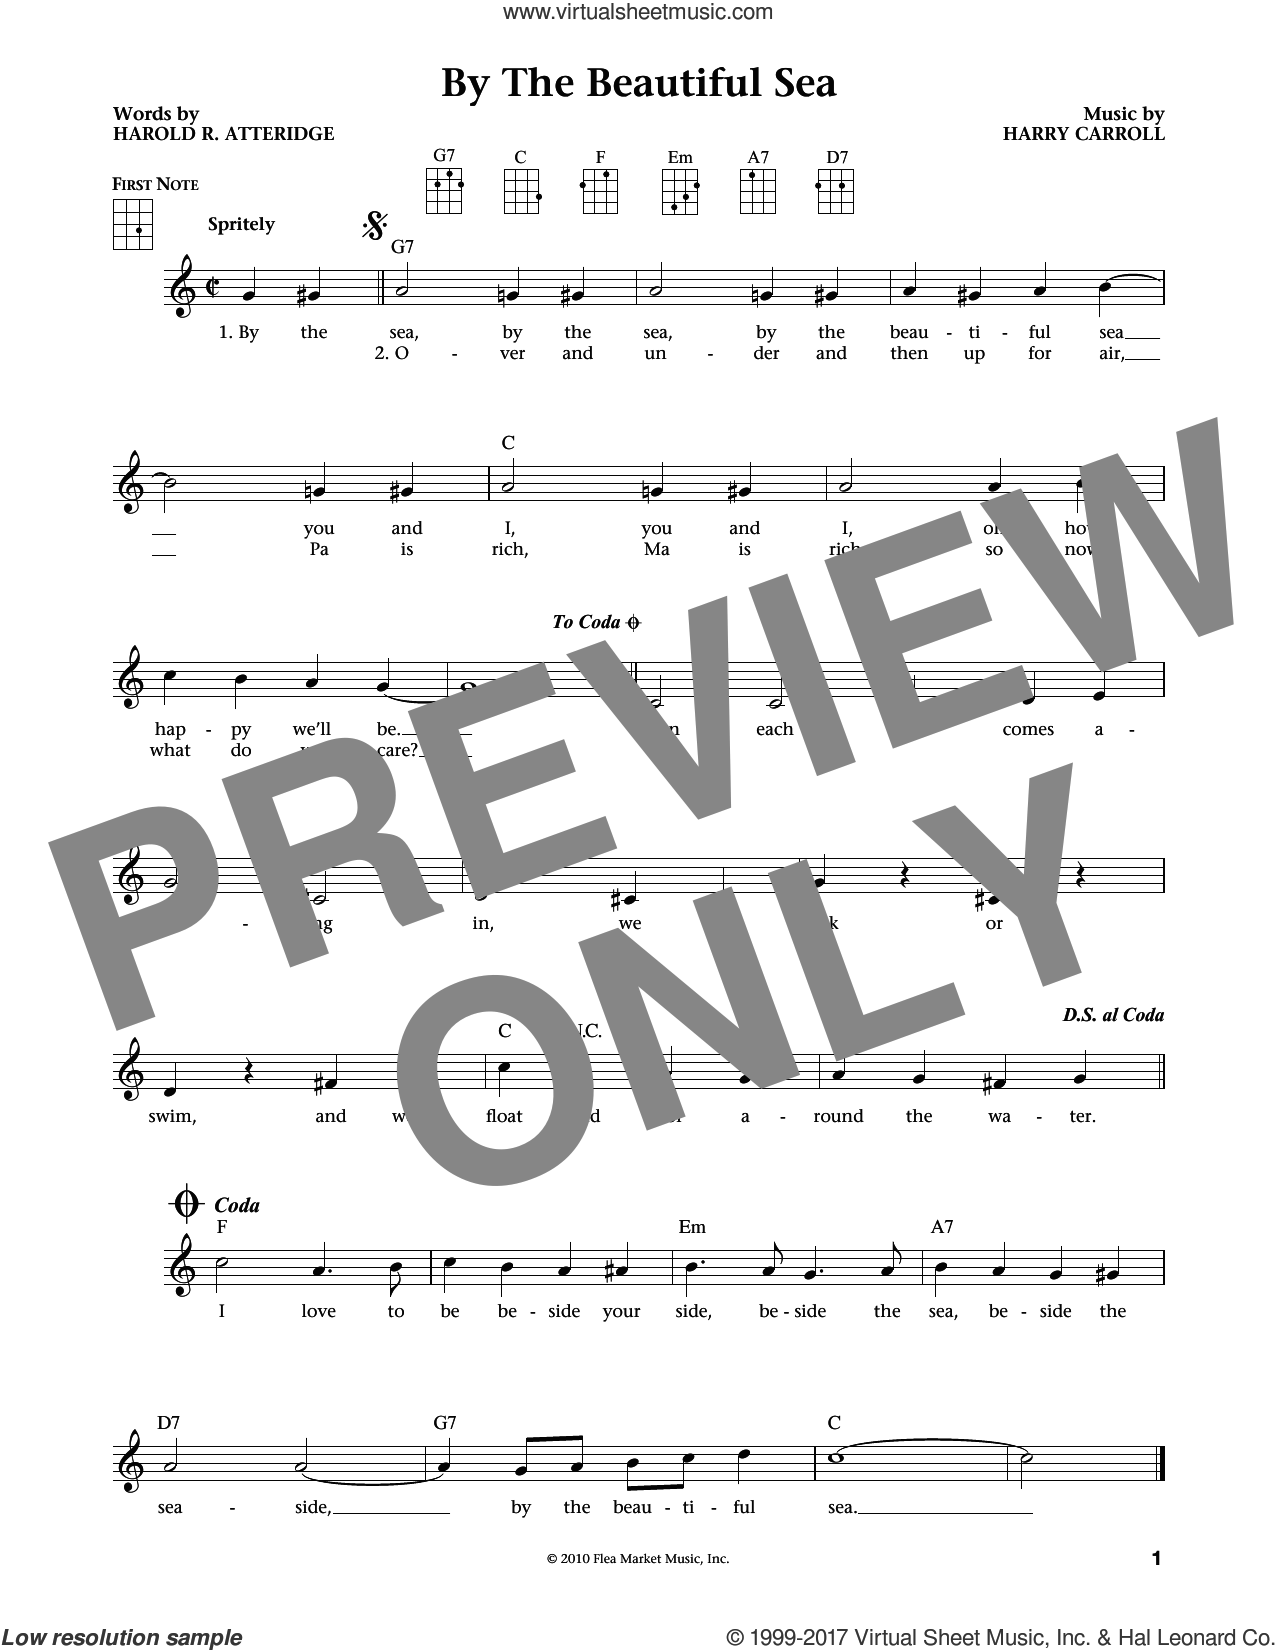 By The Beautiful Sea (from The Daily Ukulele) (arr. Liz and Jim Beloff) sheet music for ukulele by Harry Carroll, Jim Beloff, Liz Beloff and Harold R. Atteridge, intermediate skill level